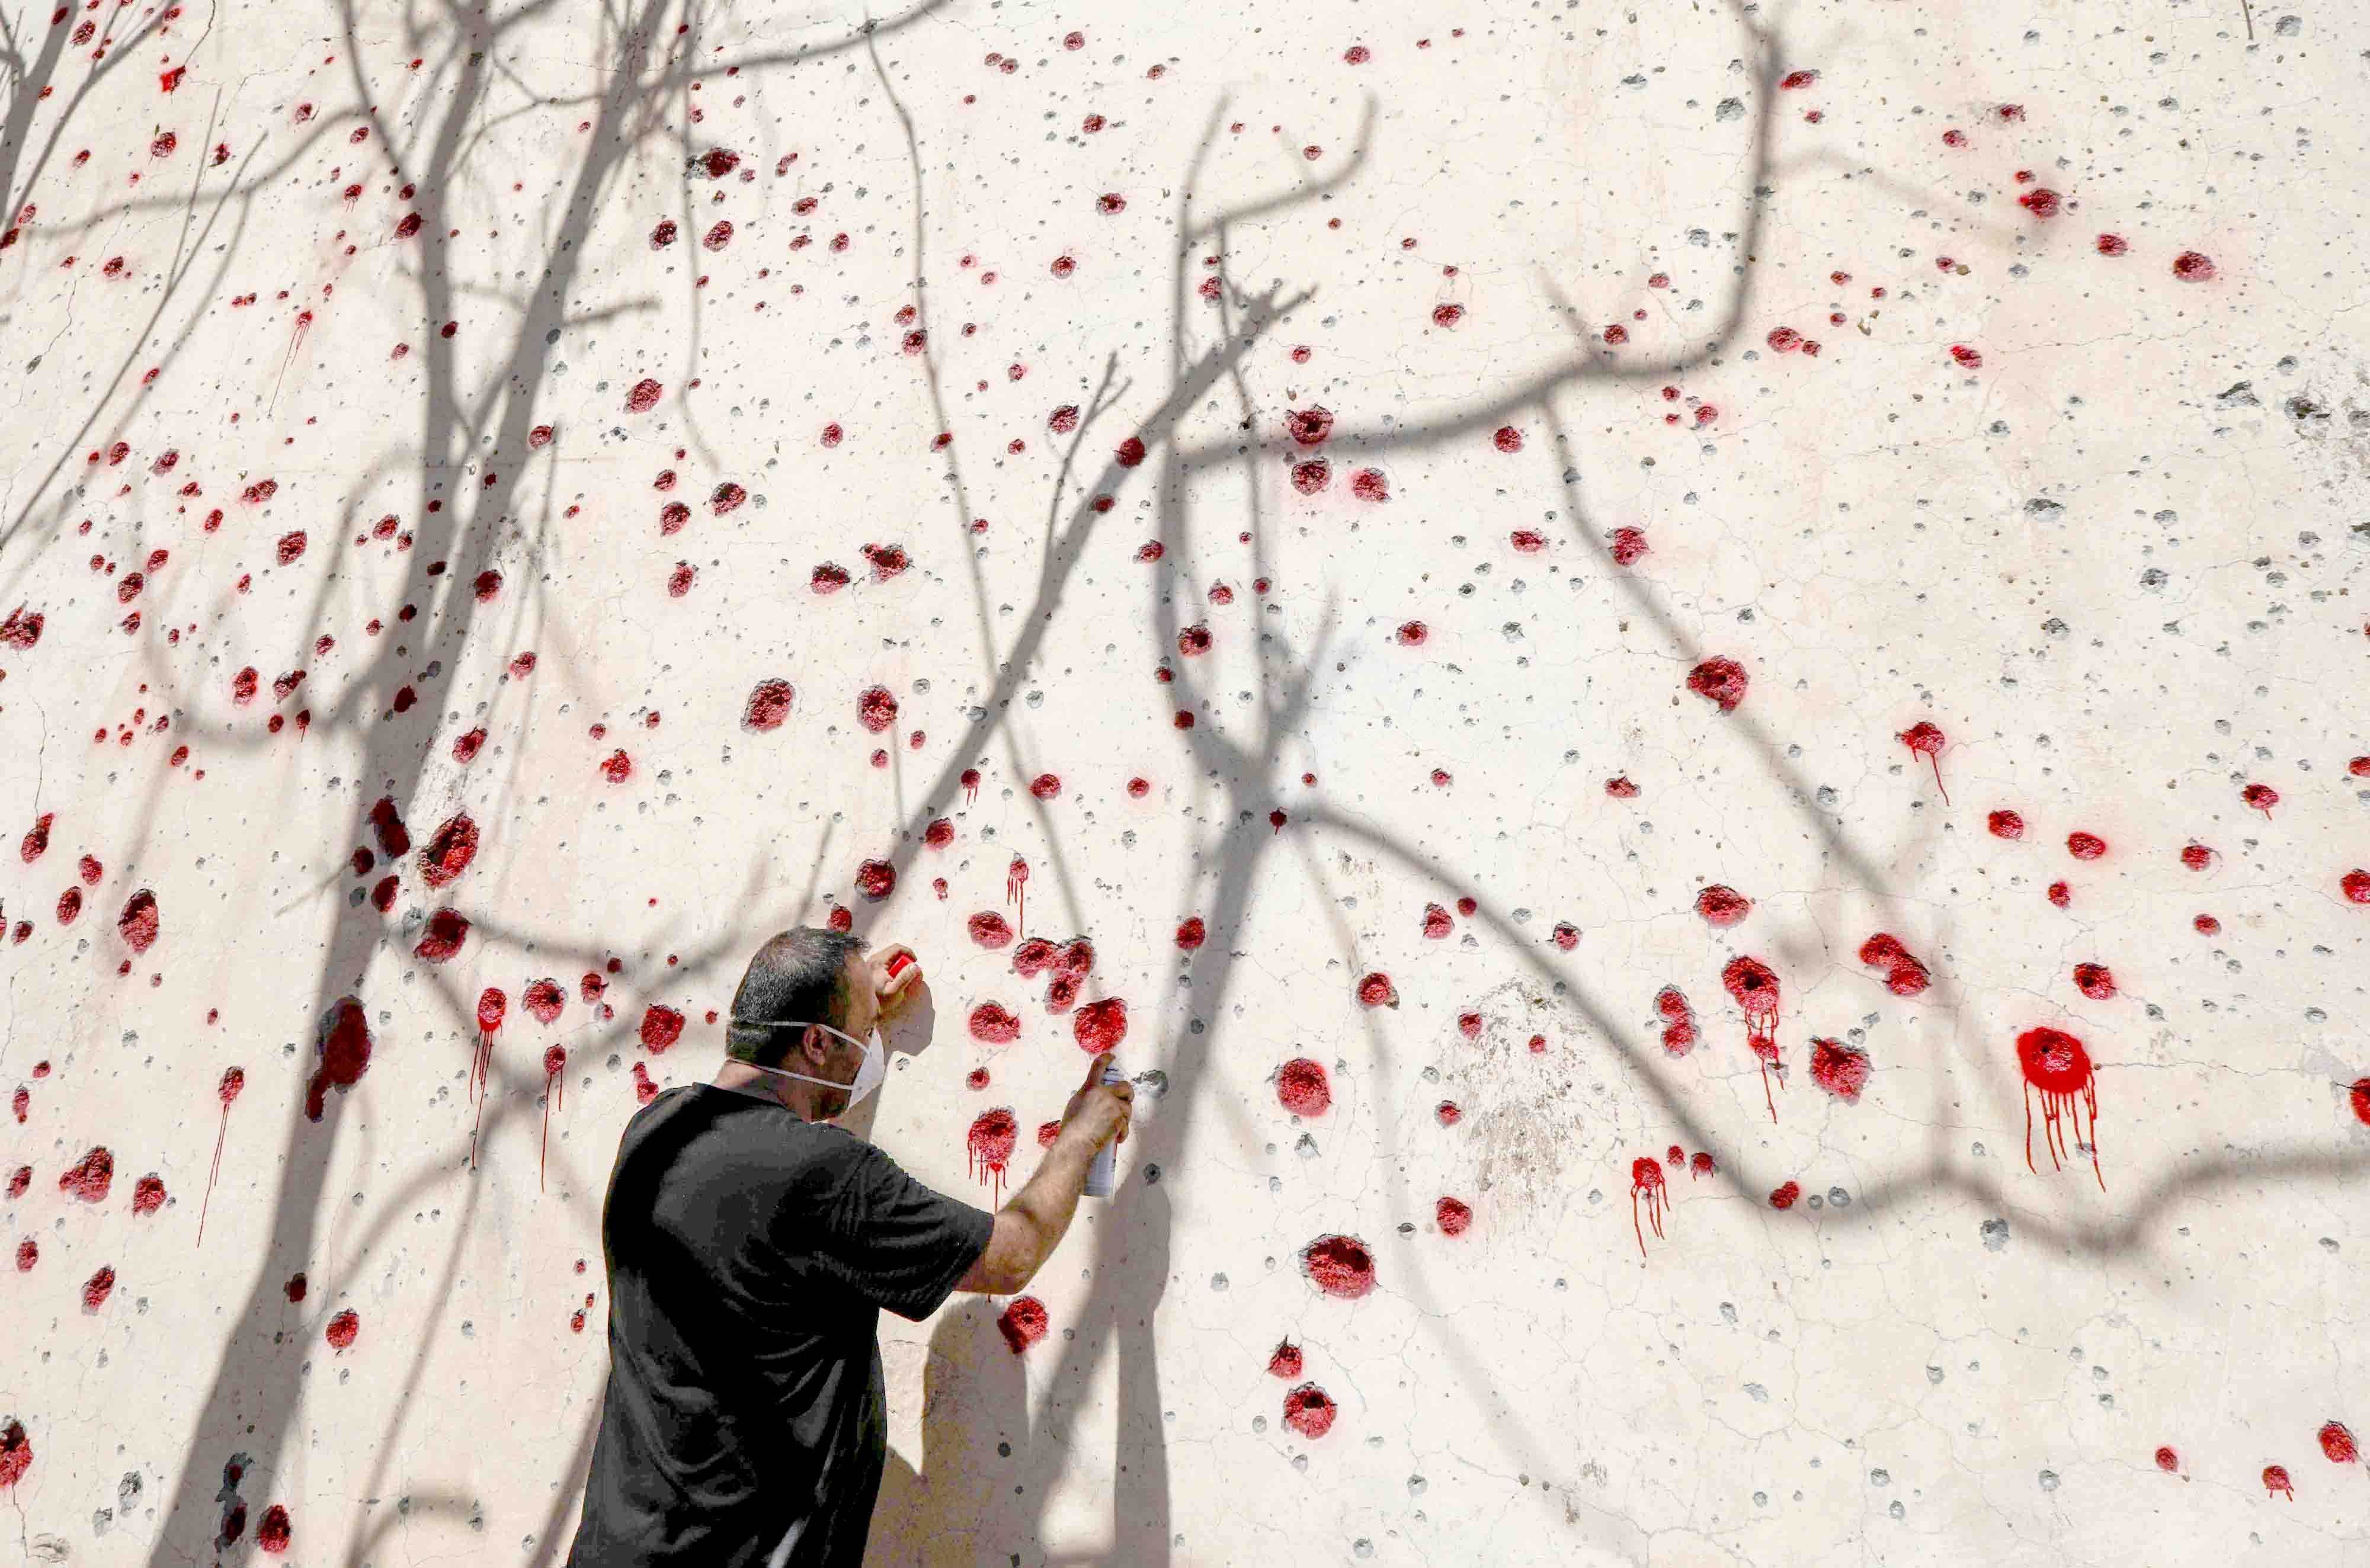 Deafening silence. A Kurdish man sprays red paint at holes in a wall made by shrapnel from an IRGC rocket attack in Koysinjaq, 100km east of Erbil, last September.(AFP)